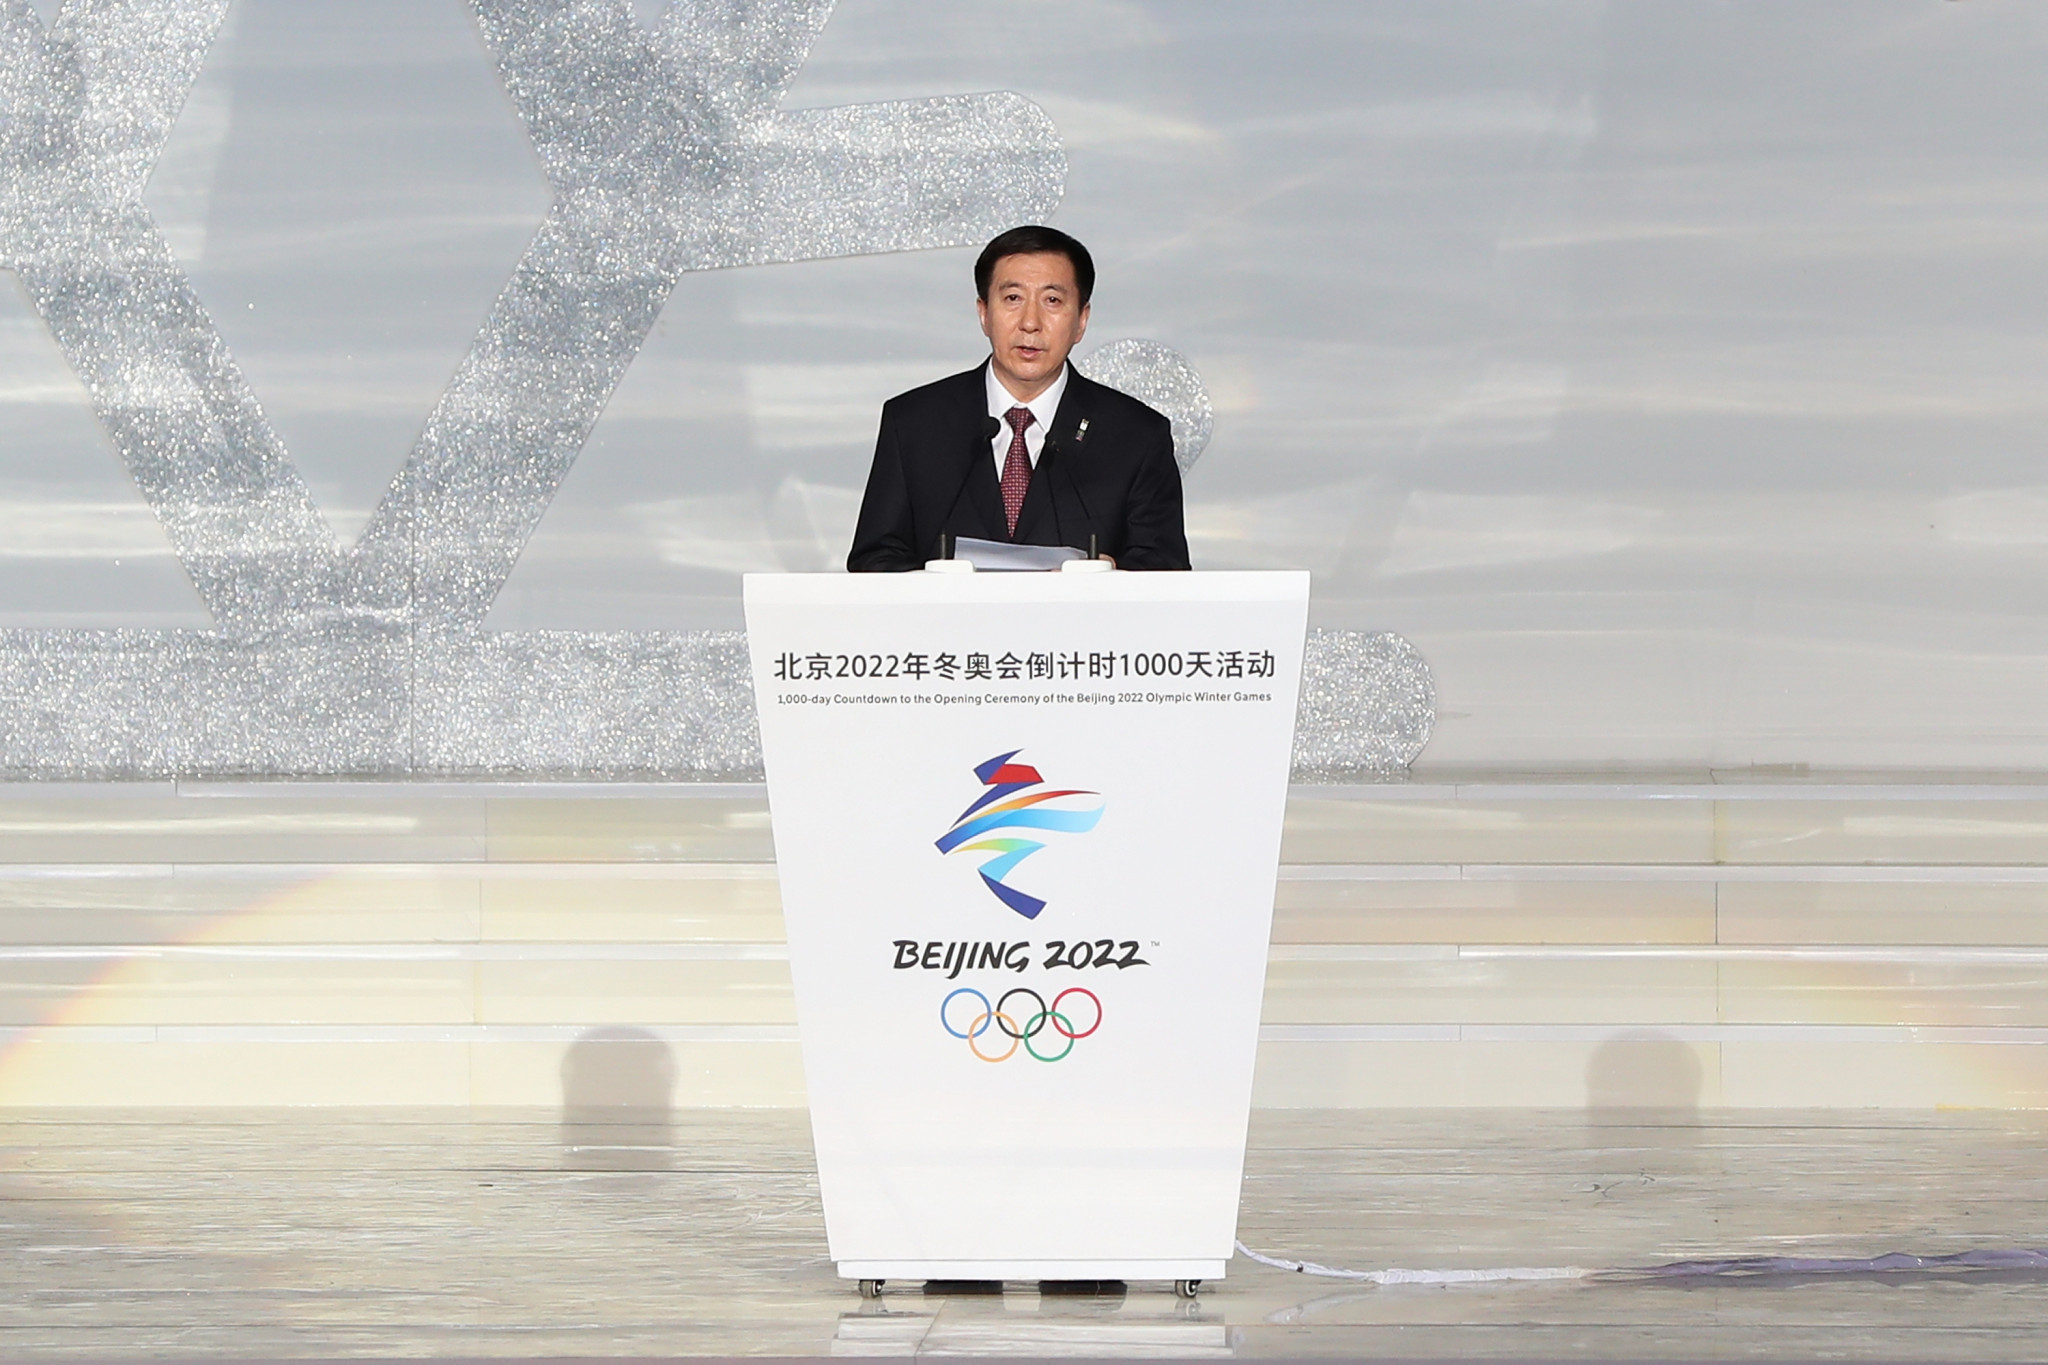 IOC reiterates coronavirus support in video conference with Beijing 2022